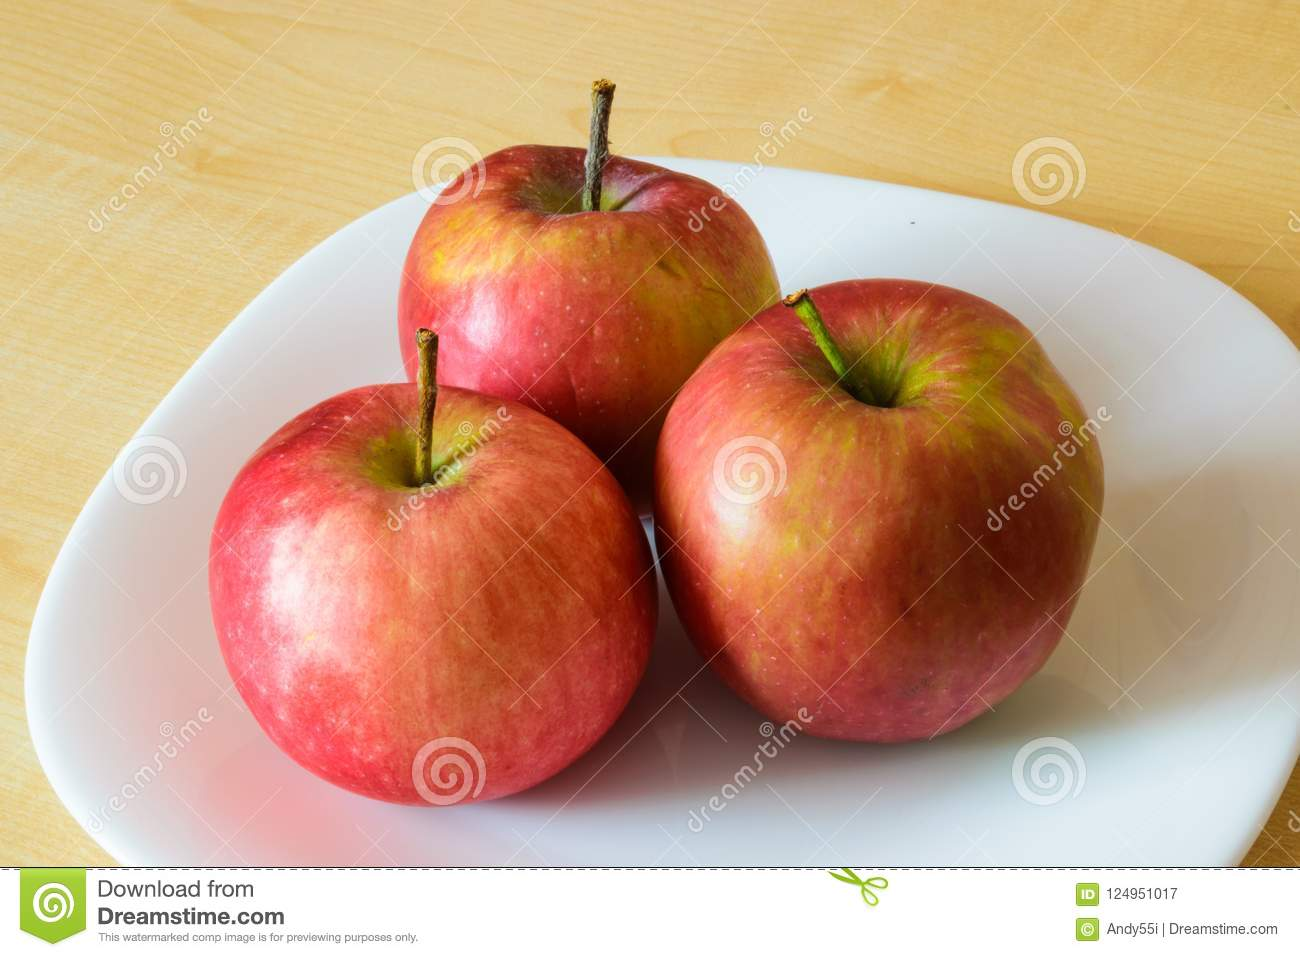 Apple Fruits Pictures Download